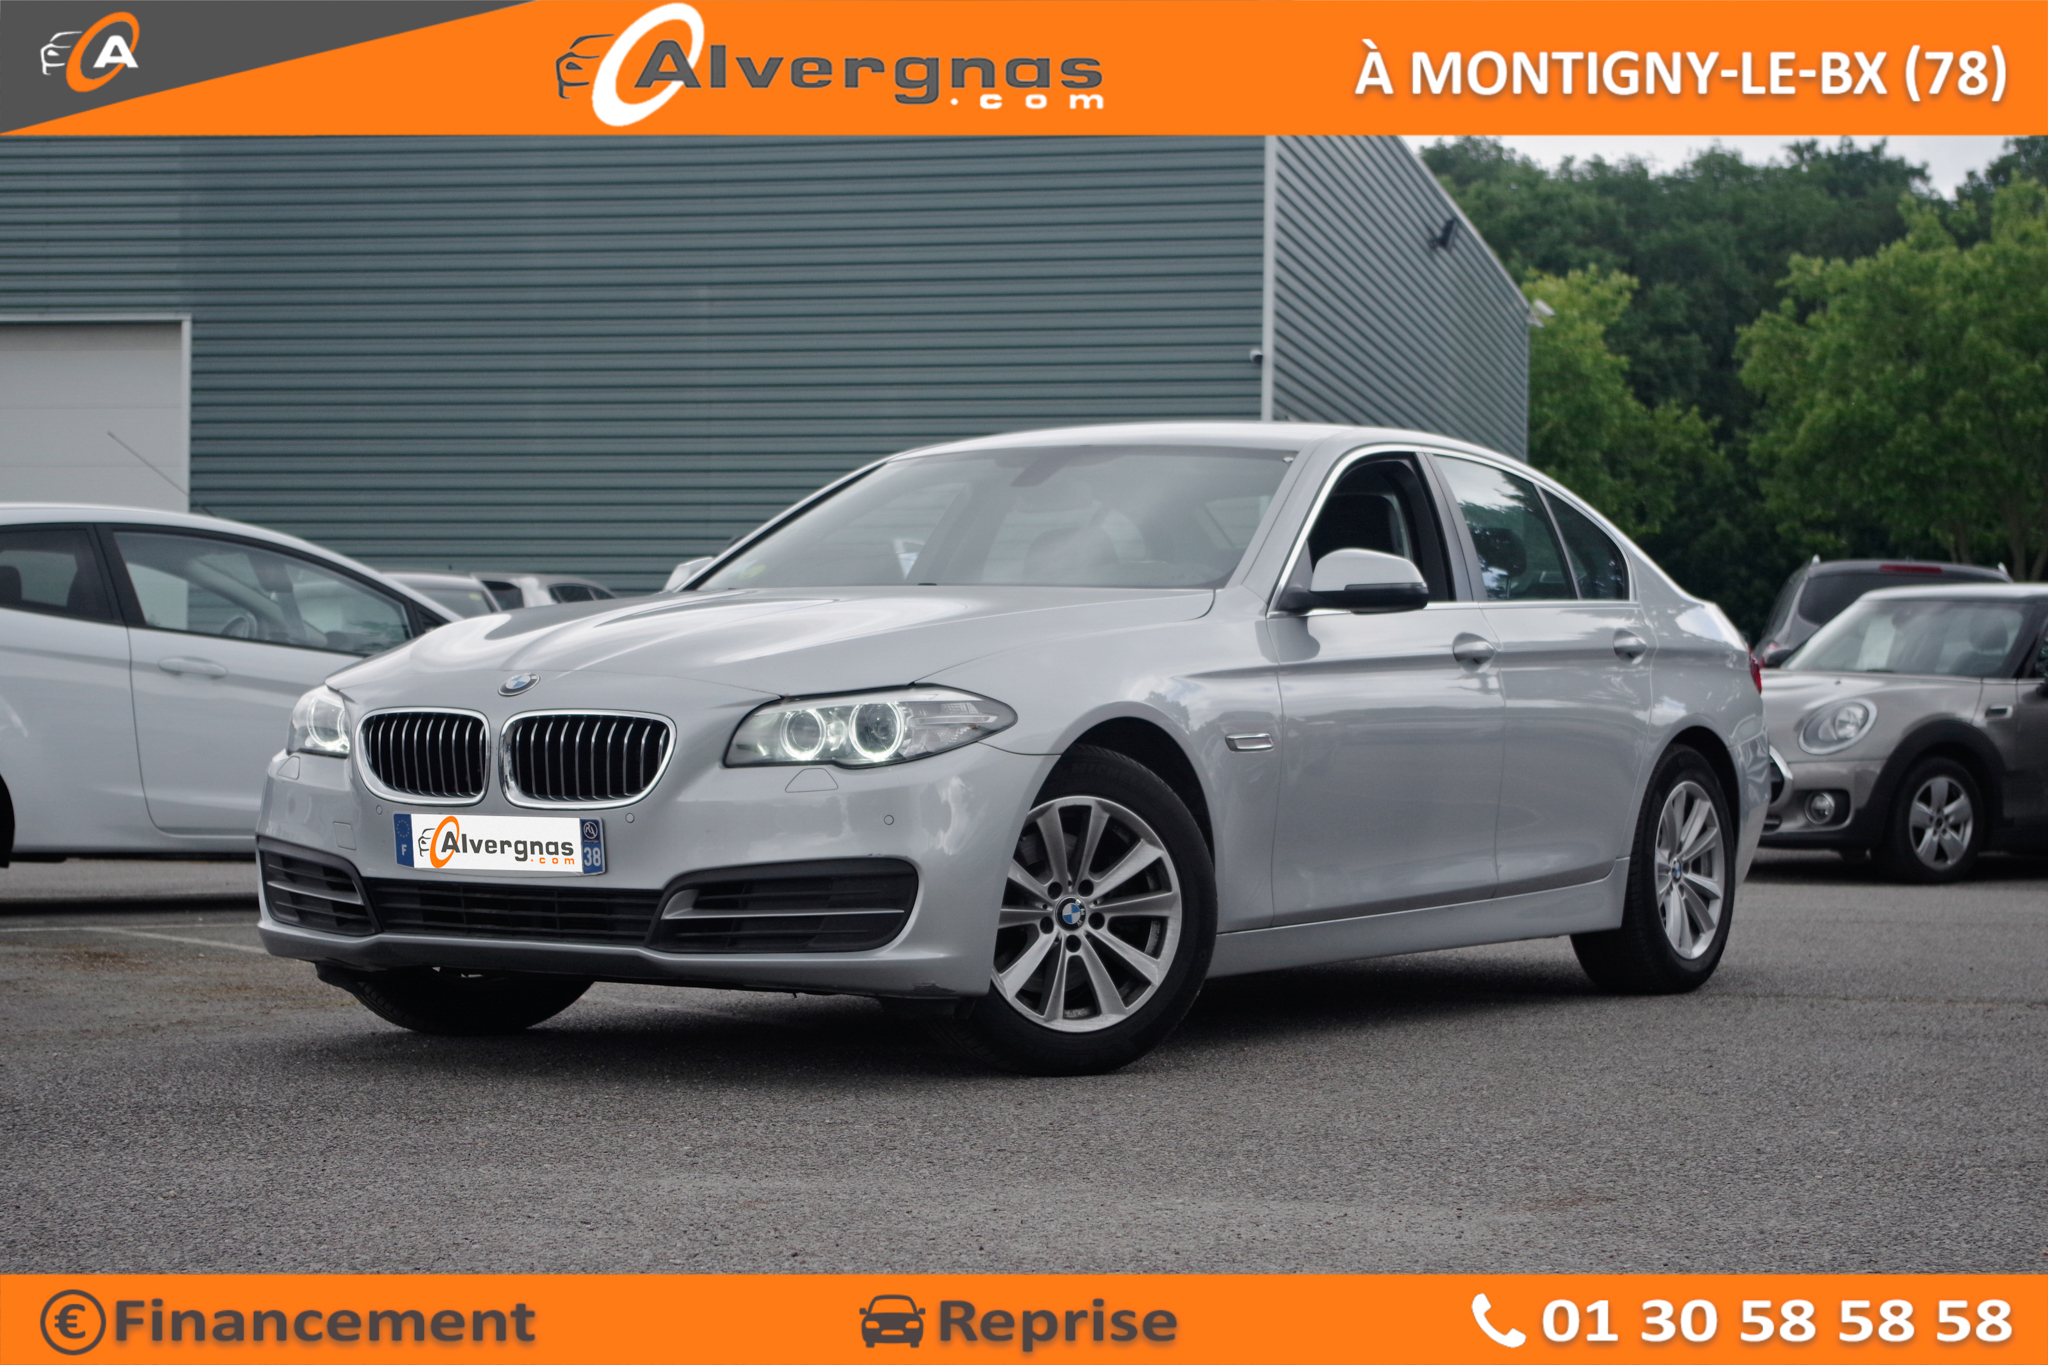 BMW SERIE 5 d'occasion sur Paris